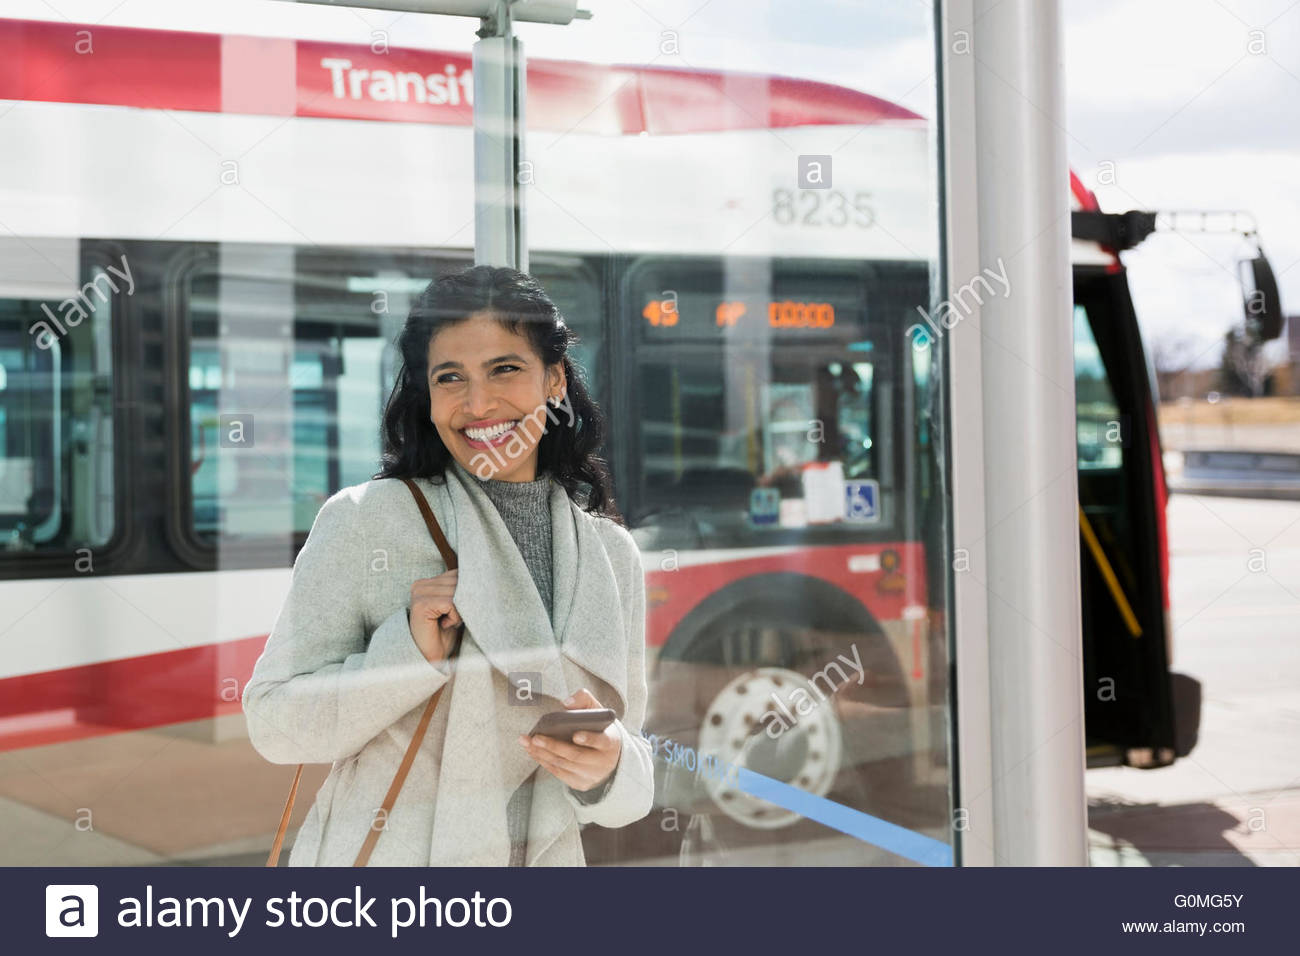 Smiling woman waiting at bus stop Photo Stock